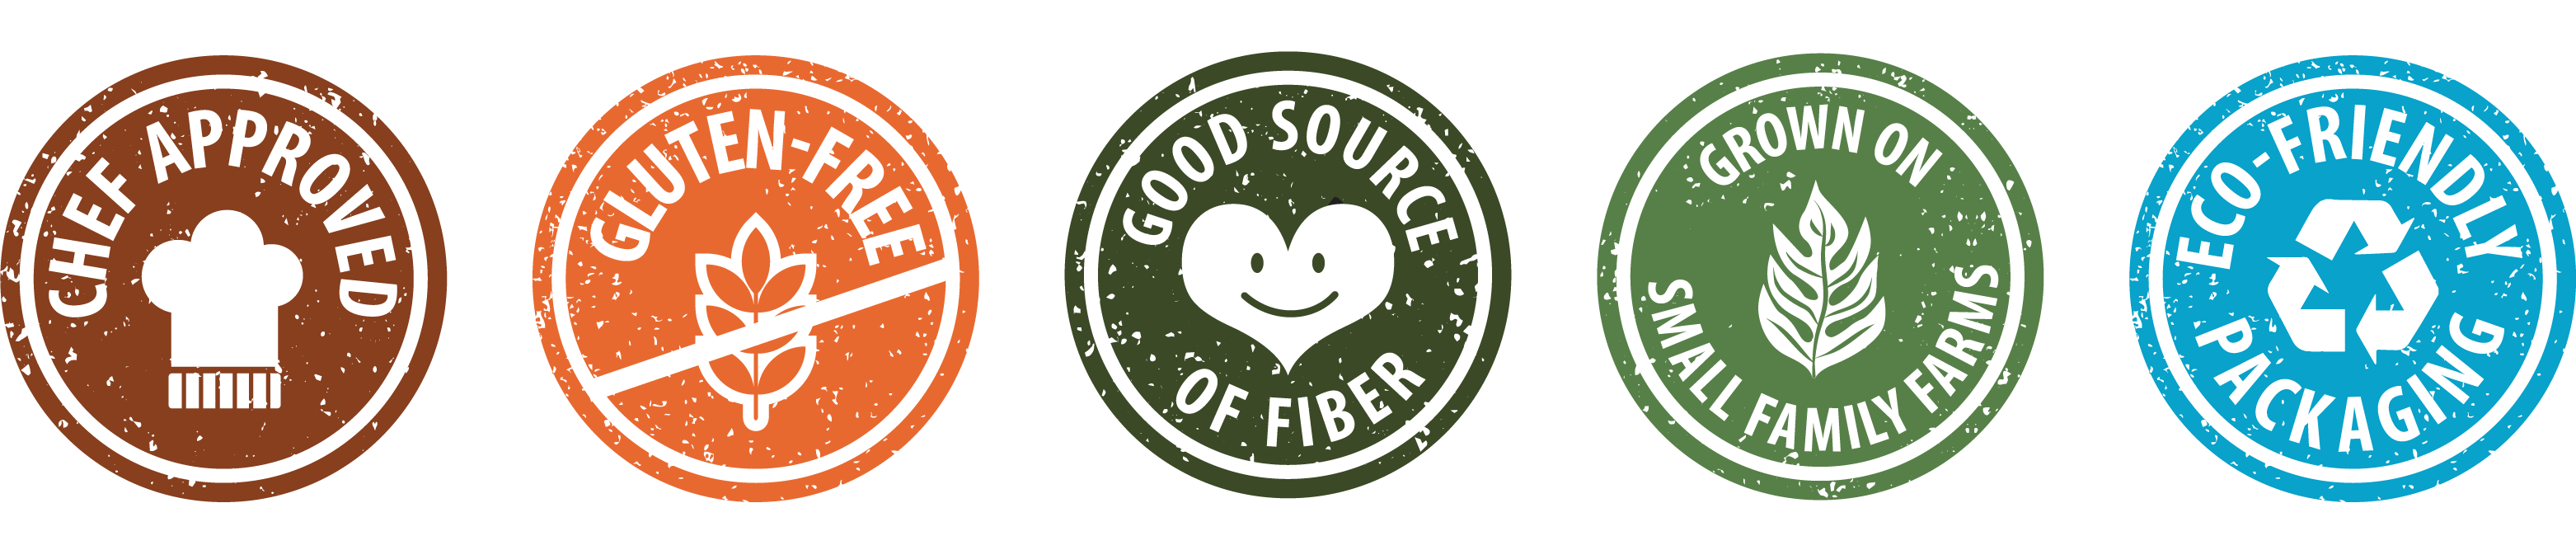 chef approved, gluten-free, good source of fiber, grown on small family farms, eco-friendly packaging